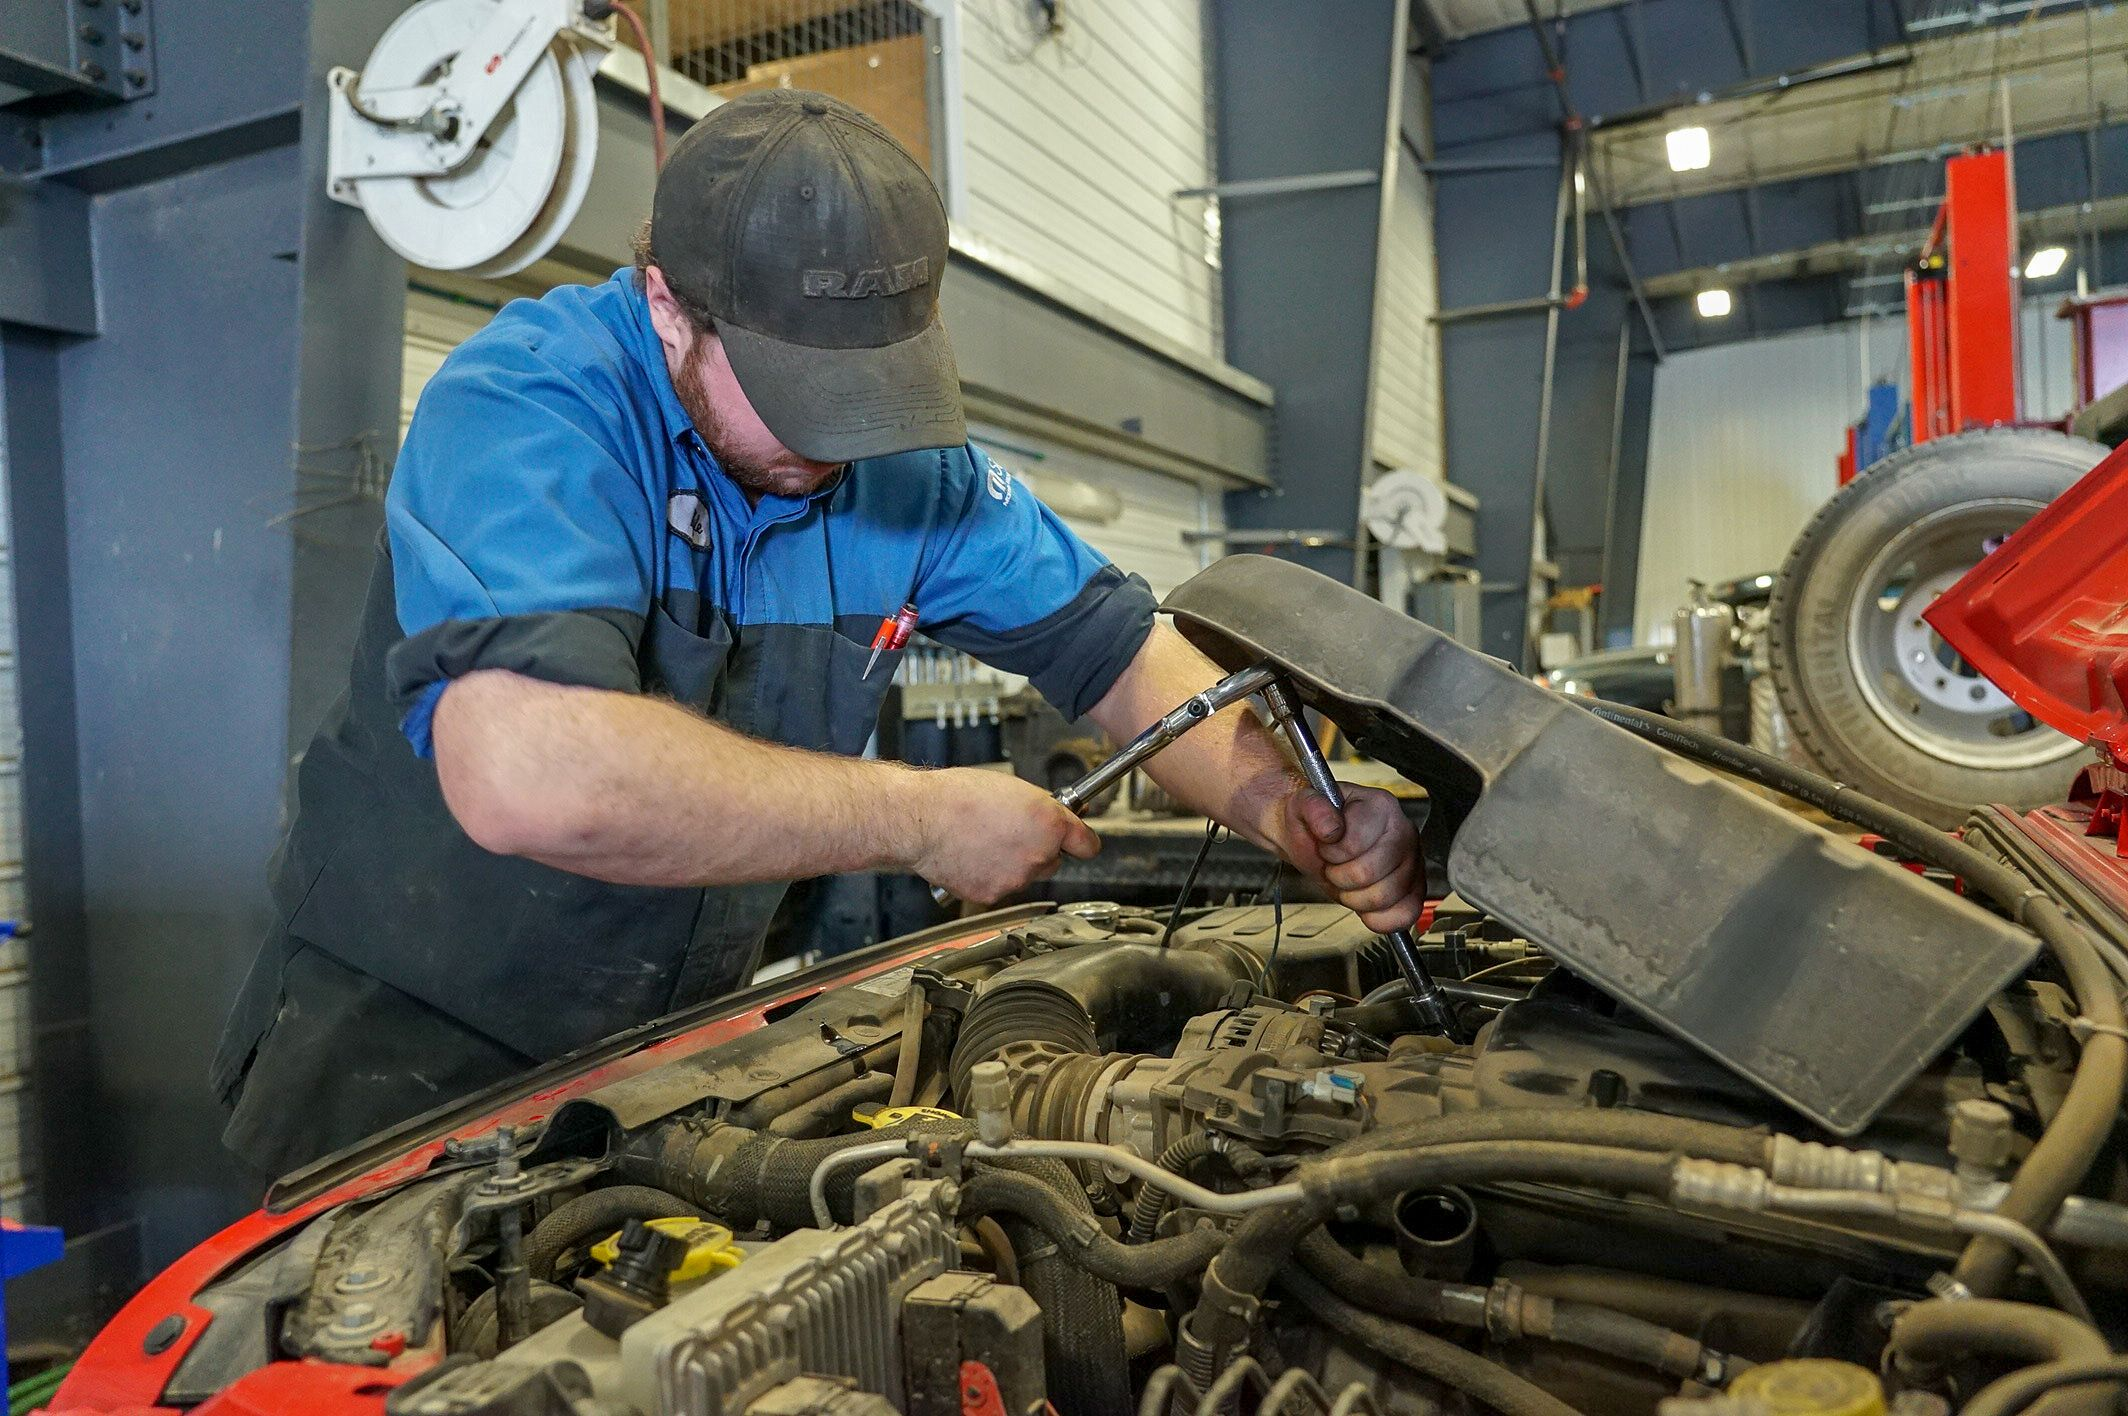 A photo of a service technician working on a vehicle.